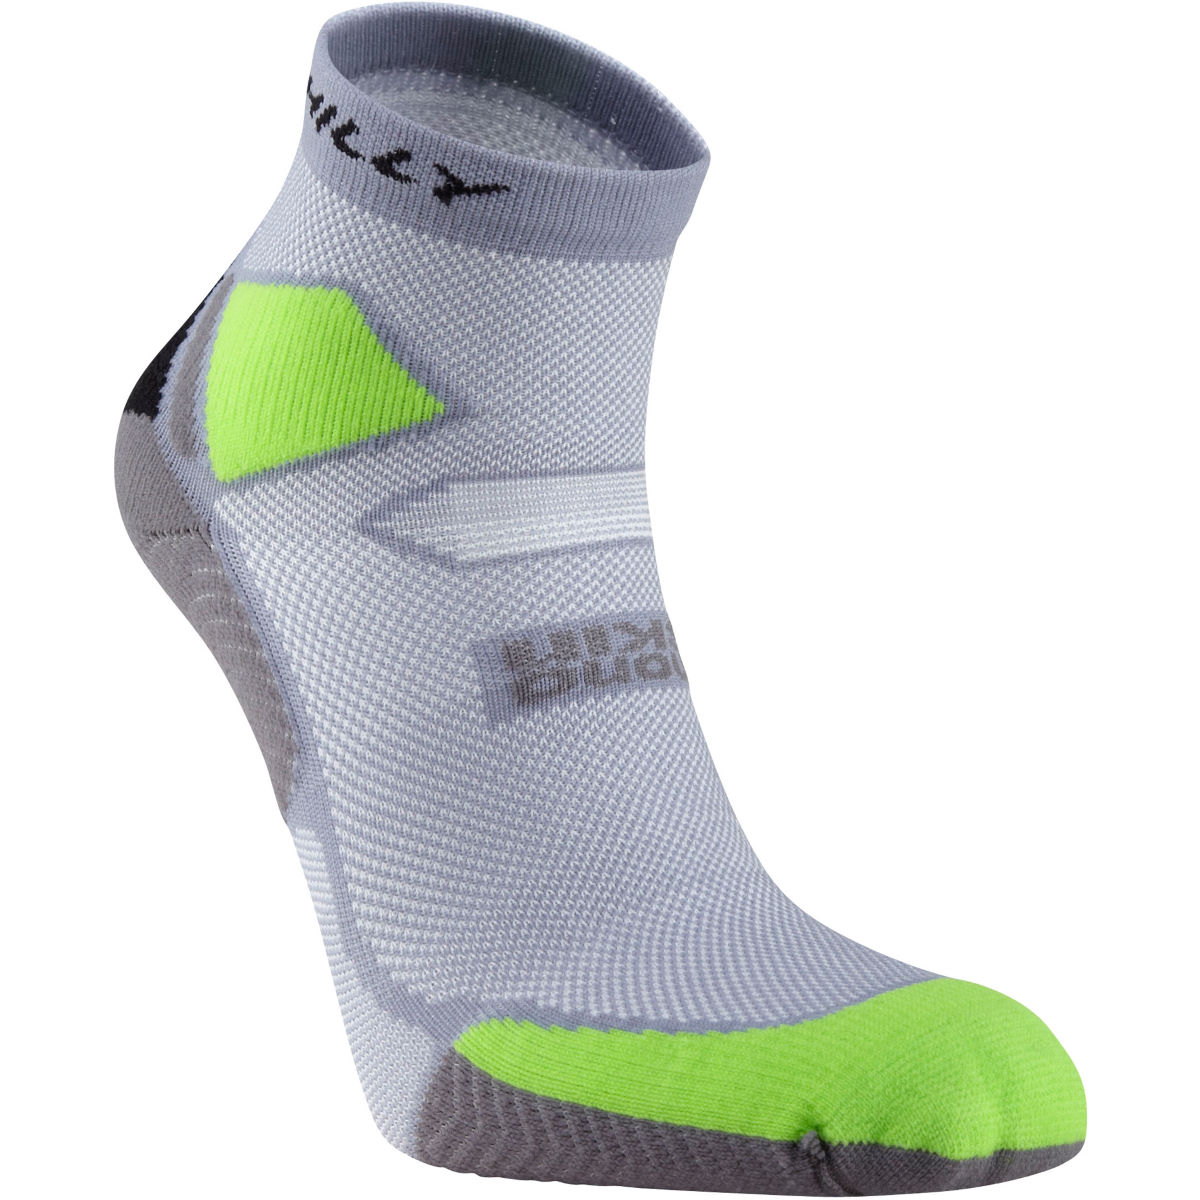 Hilly - Skyline Anklet - S Grey/Lime/Black Chaussettes de running